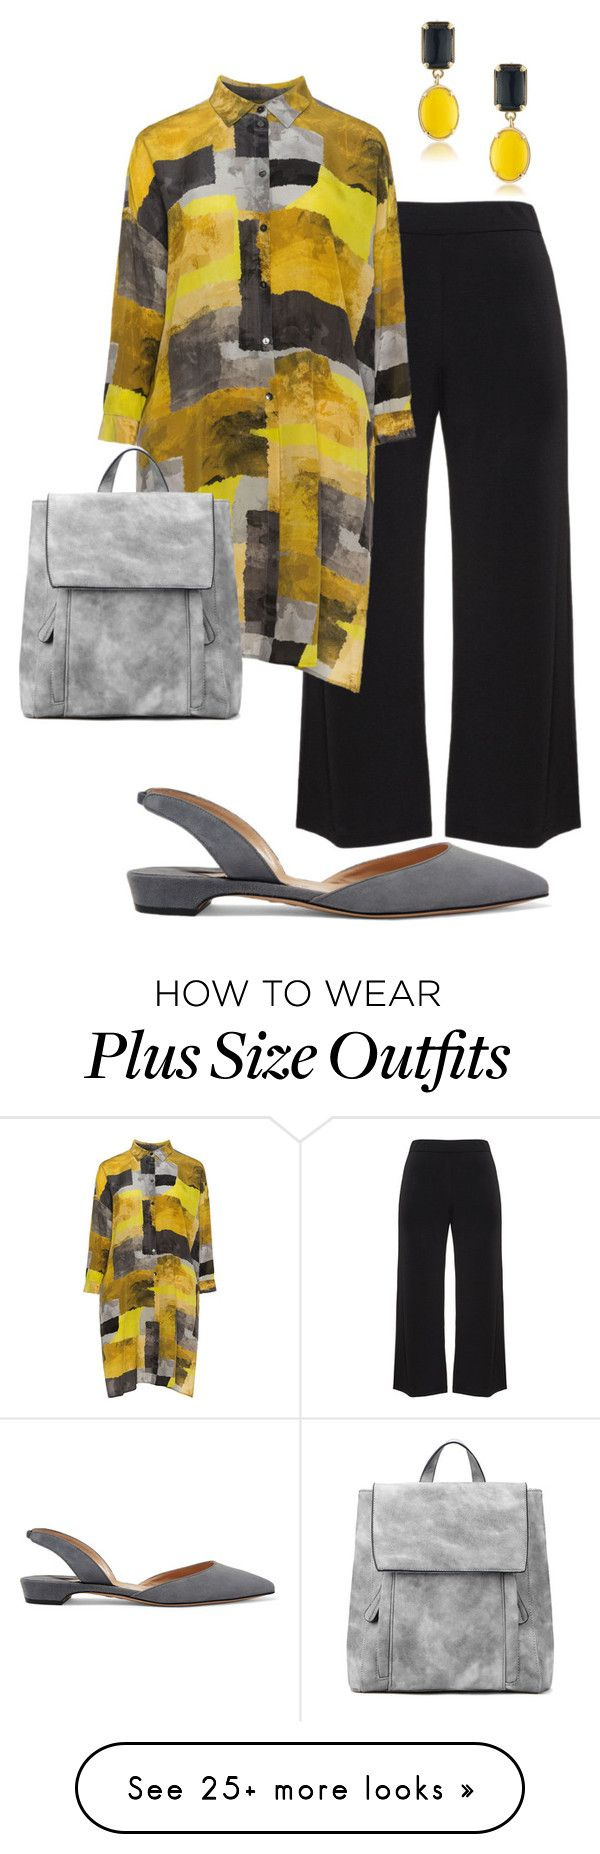 """plus size jane"" by aleger-1 on Polyvore featuring navabi, Paul Andrew and 1st & Gorgeous by Carolee"